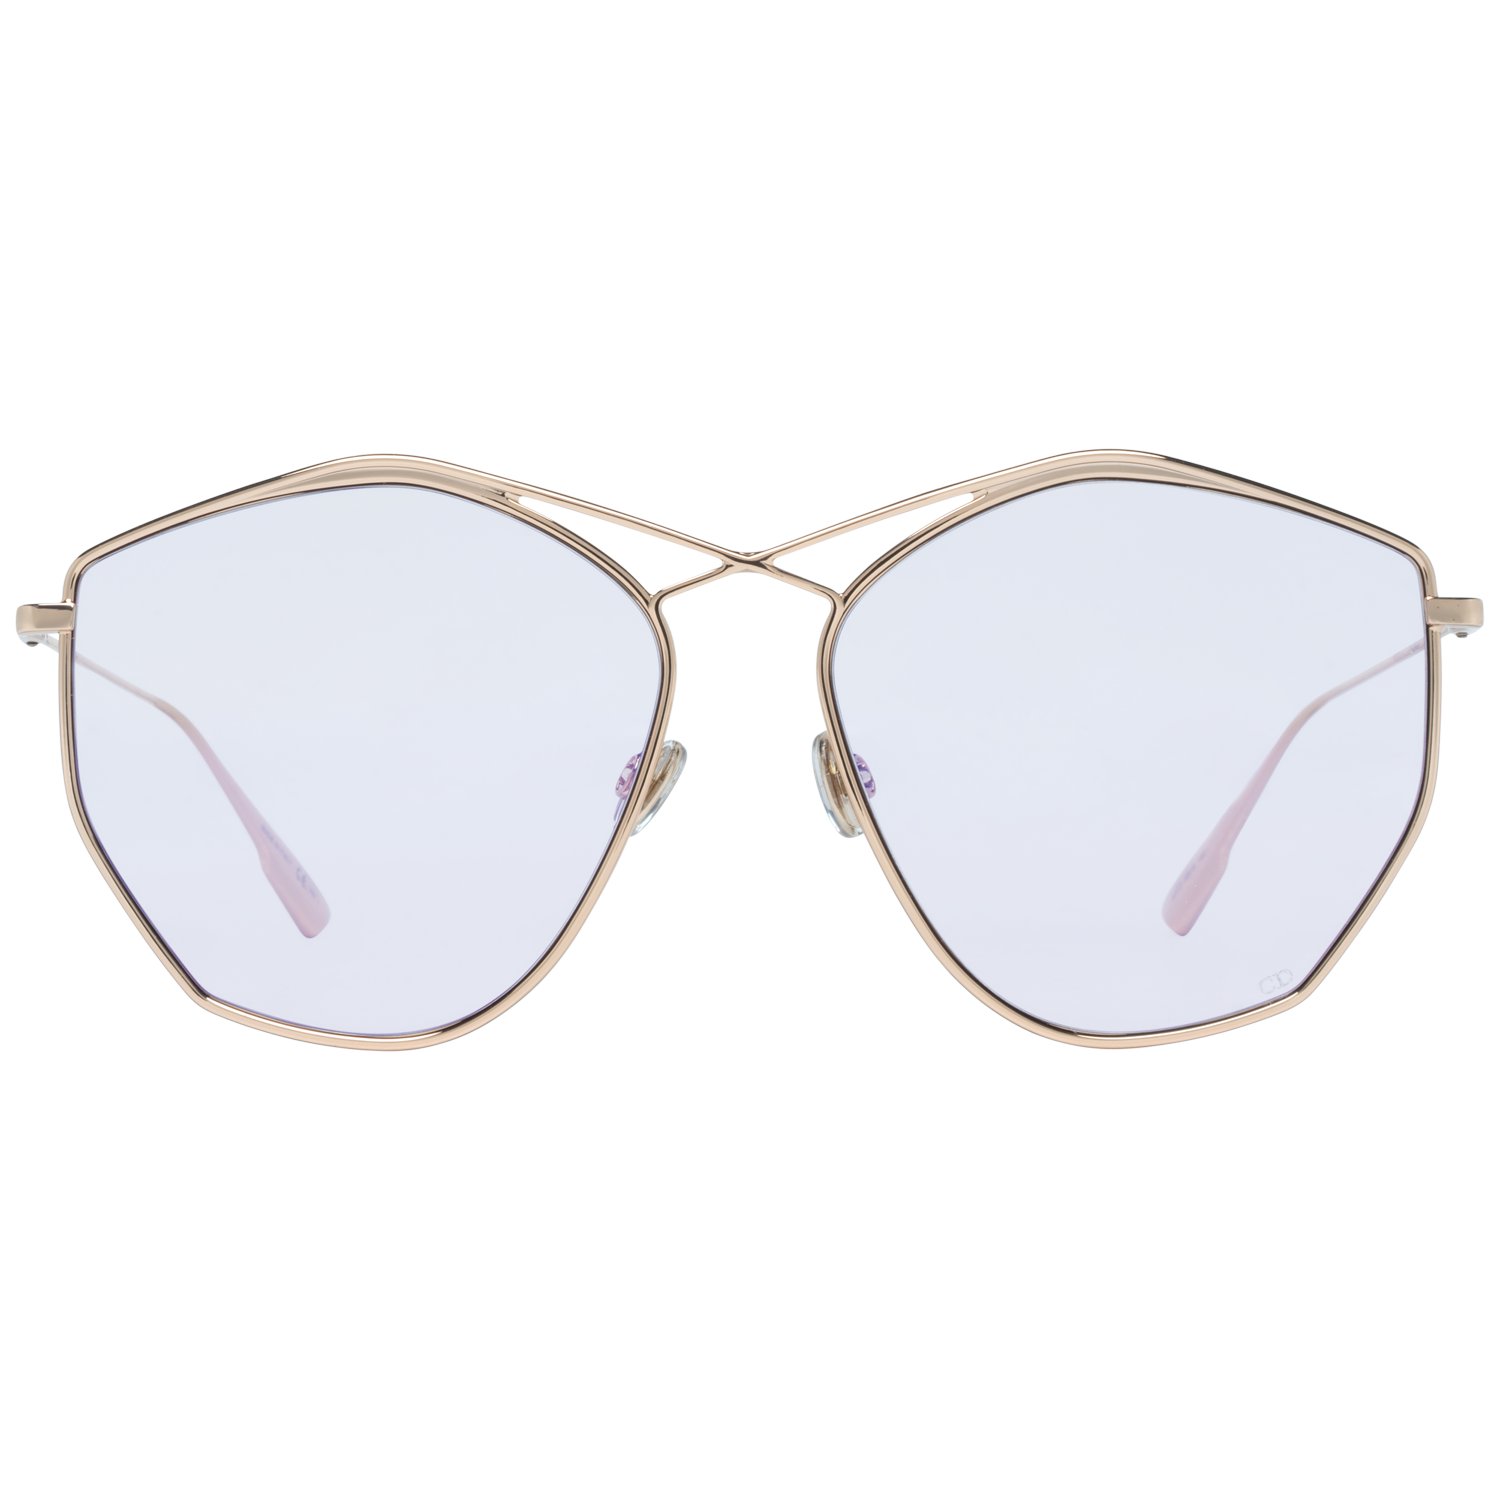 Christian Dior Sunglasses Diorstellaire4 000 TE 59 Women Gold